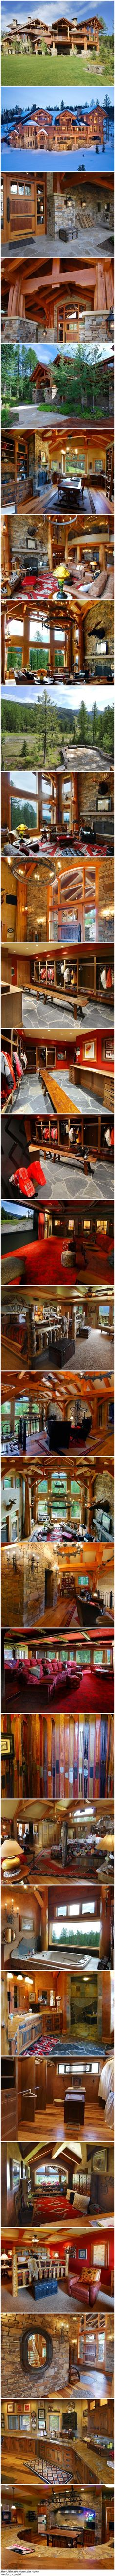 The Ultimate Mountain Home | When can I move in?